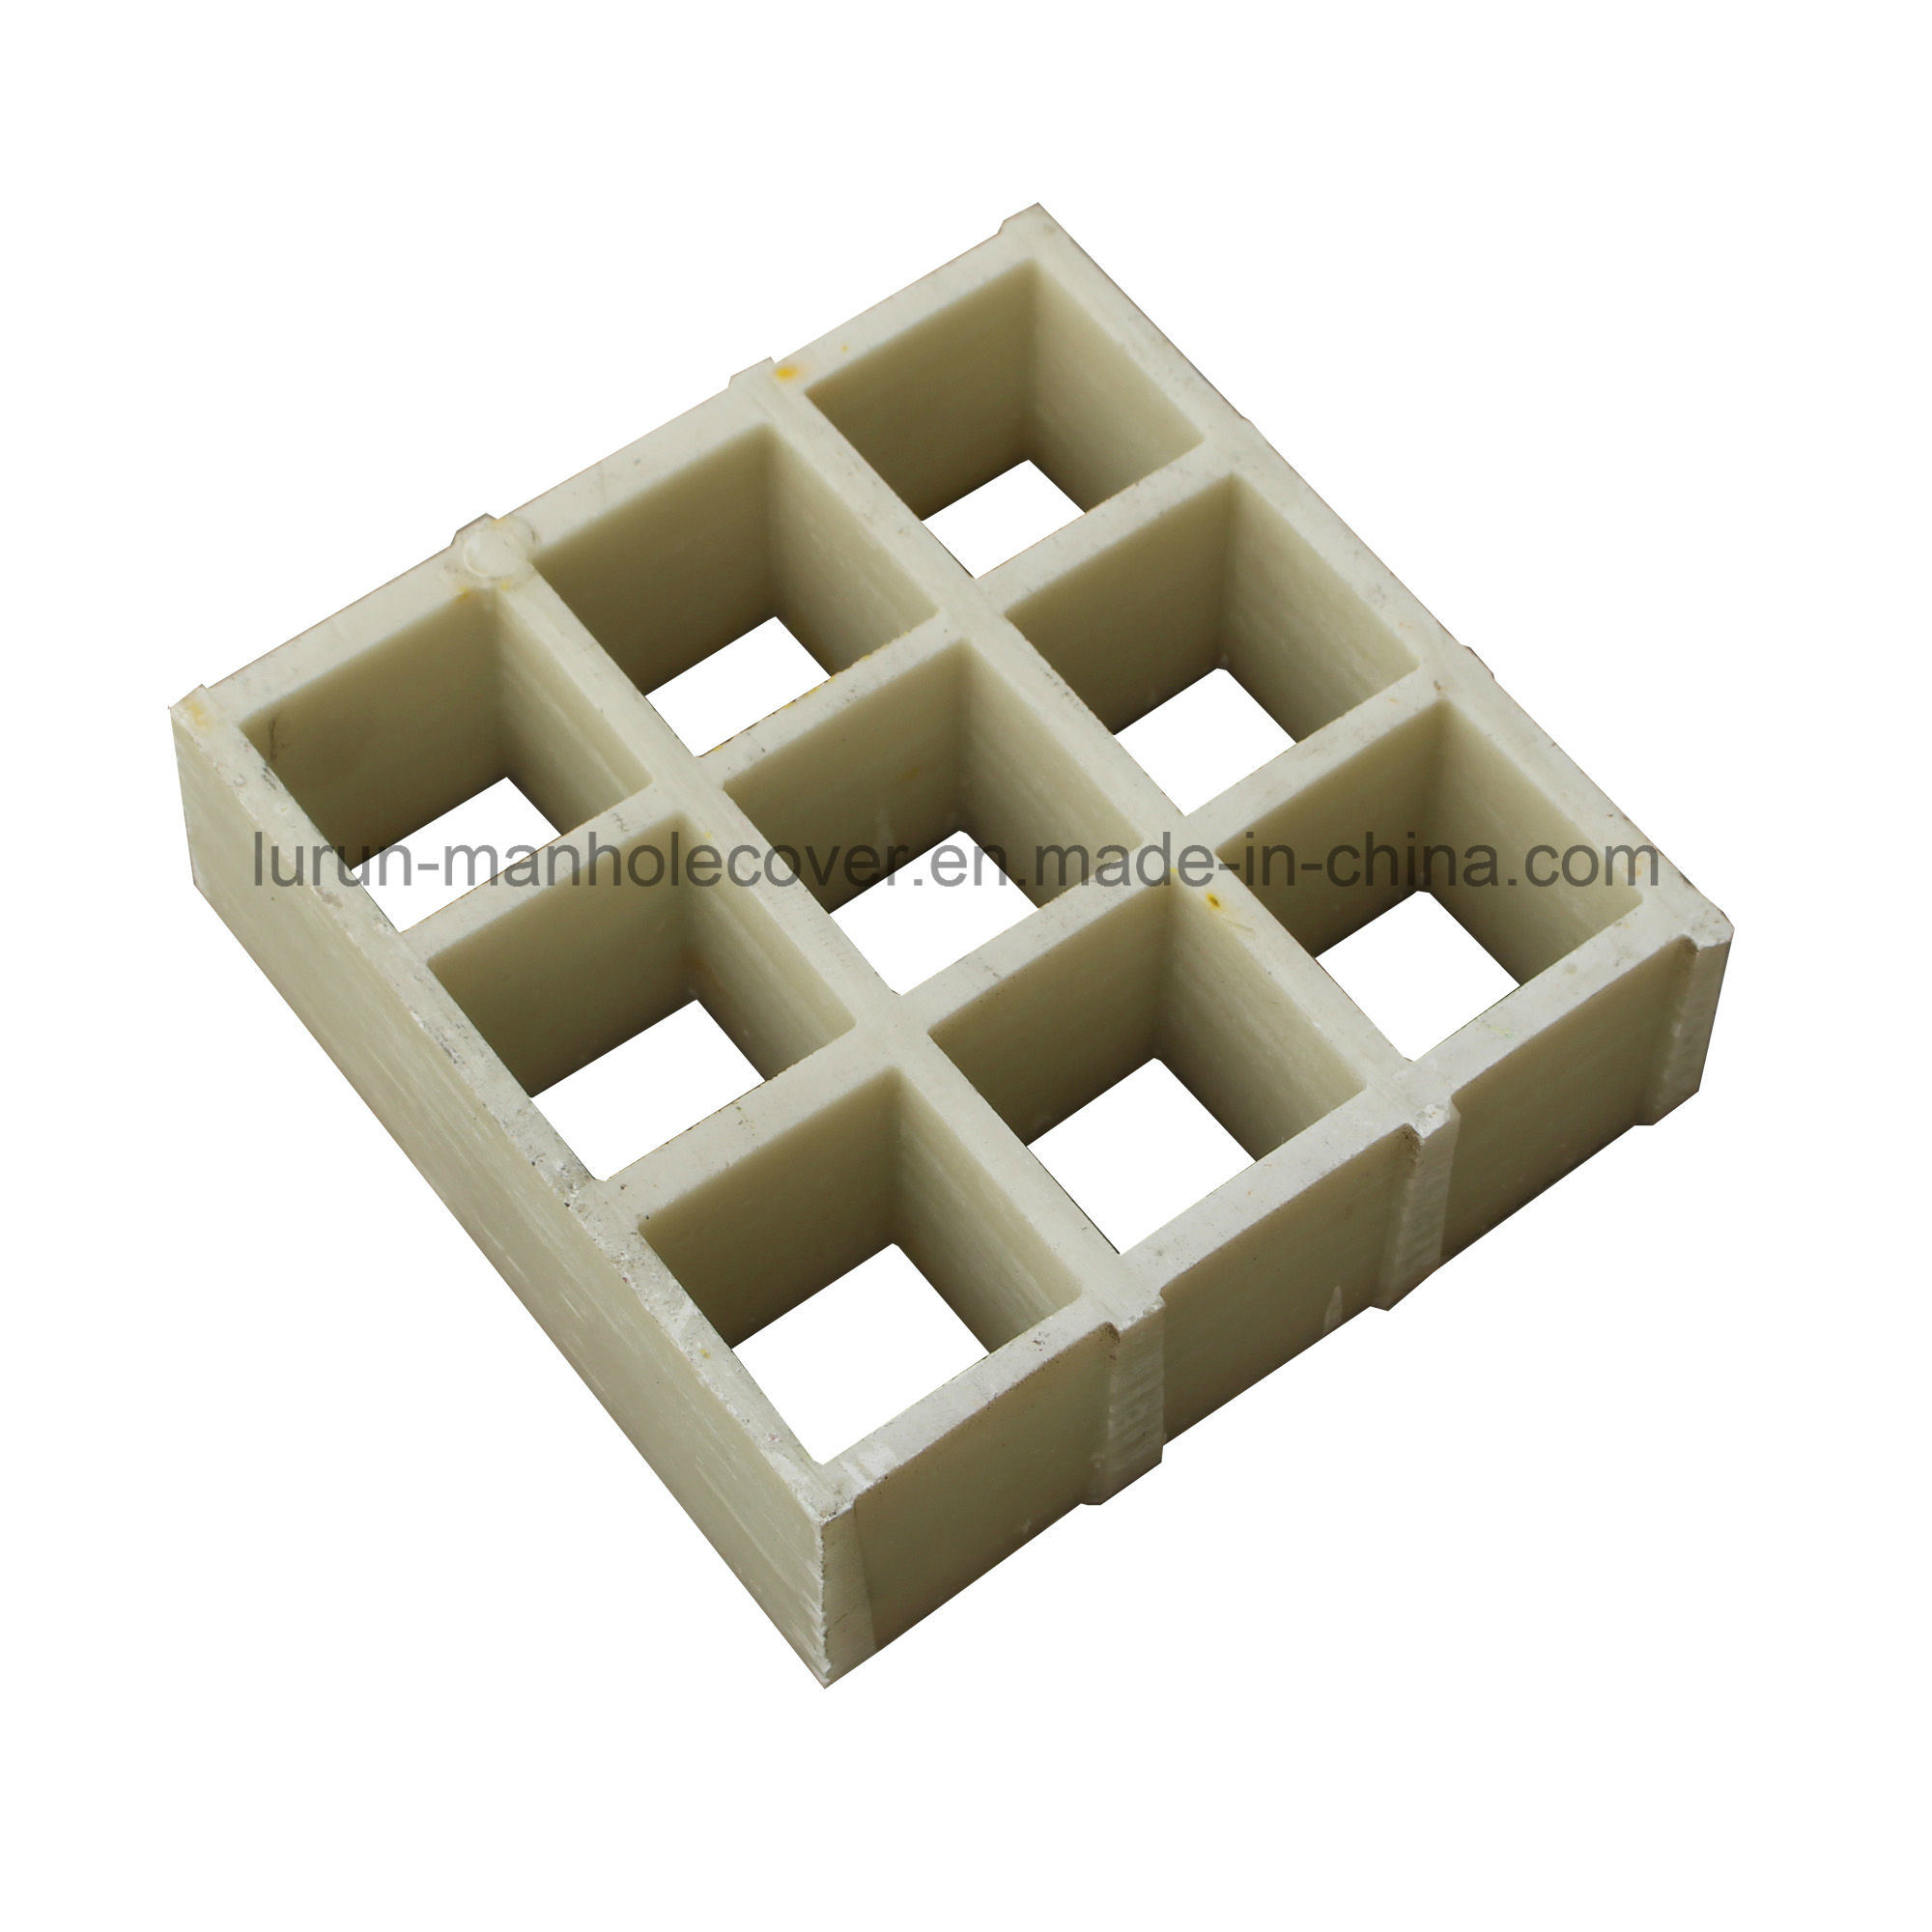 Fiber Reinforced Plastic Well Grating